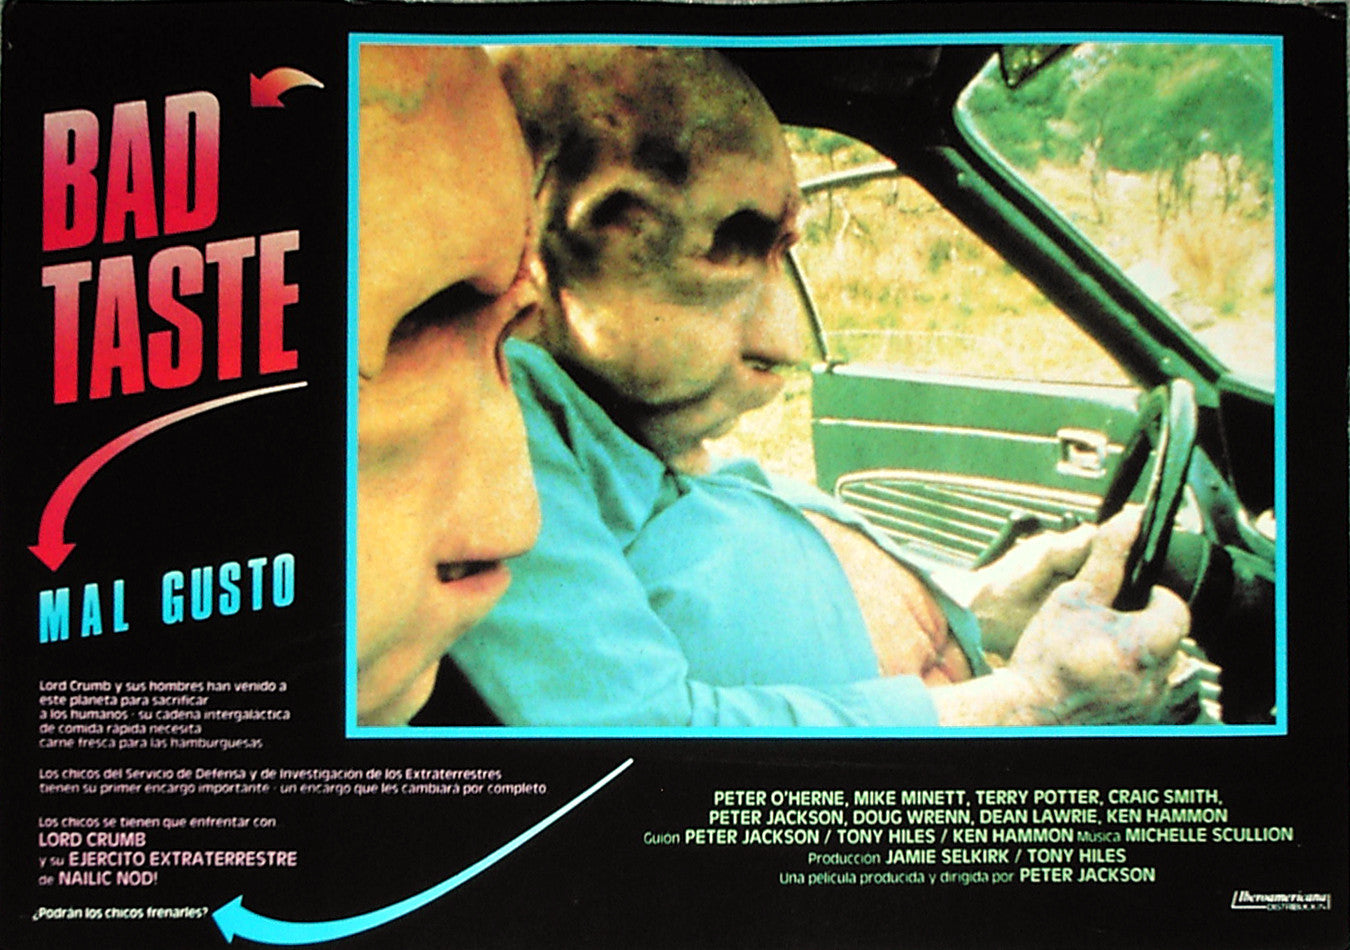 BAD TASTE - Spanish lobby card v6